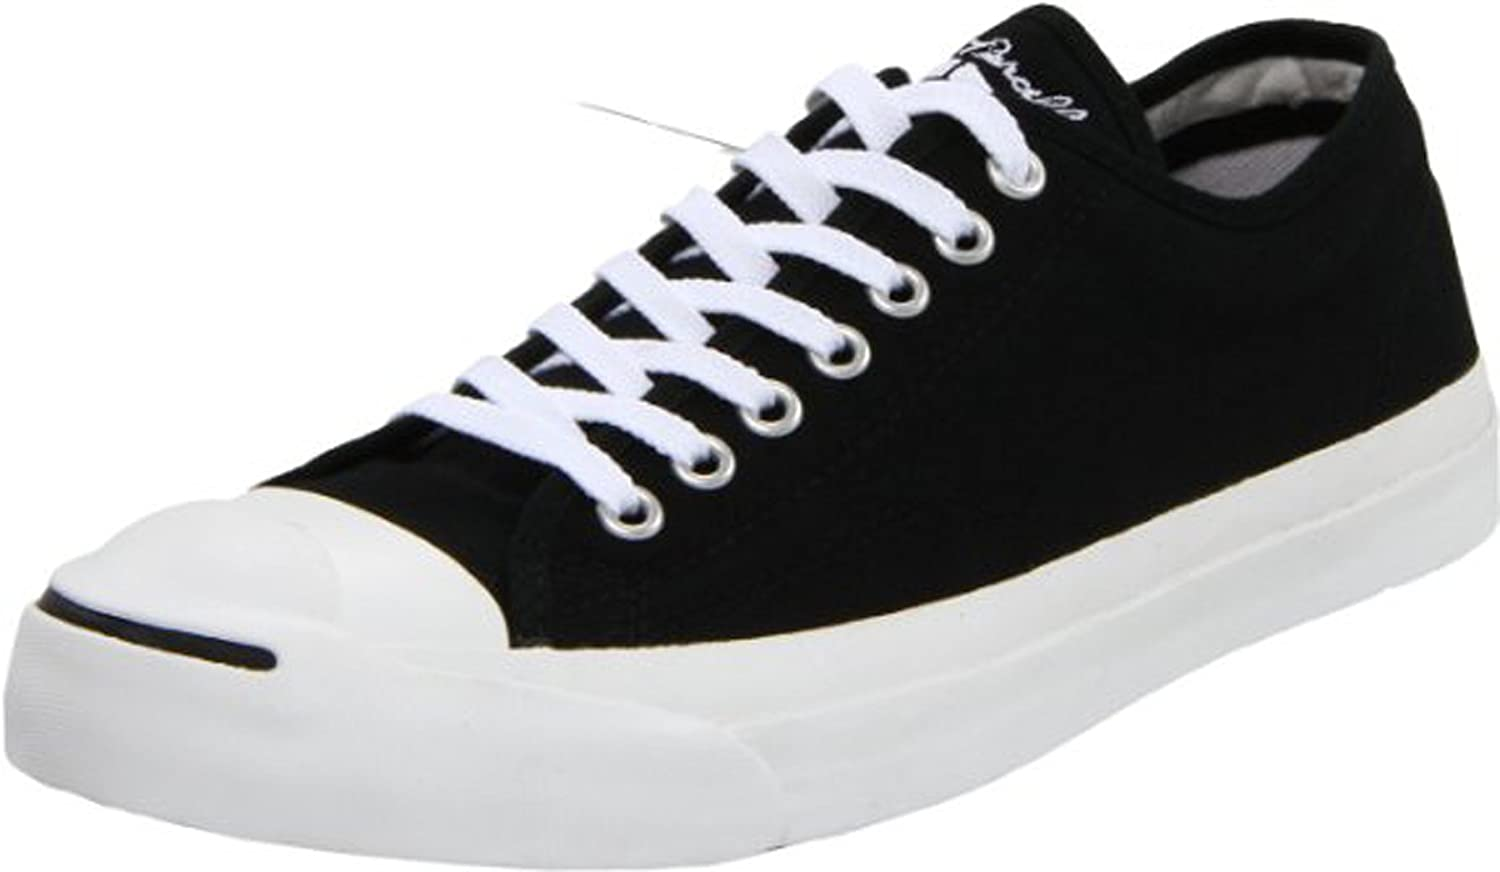 85%OFF Converse Jack Purcell CP Oxford Canvas Black mens 5 womens ... dad208eb3